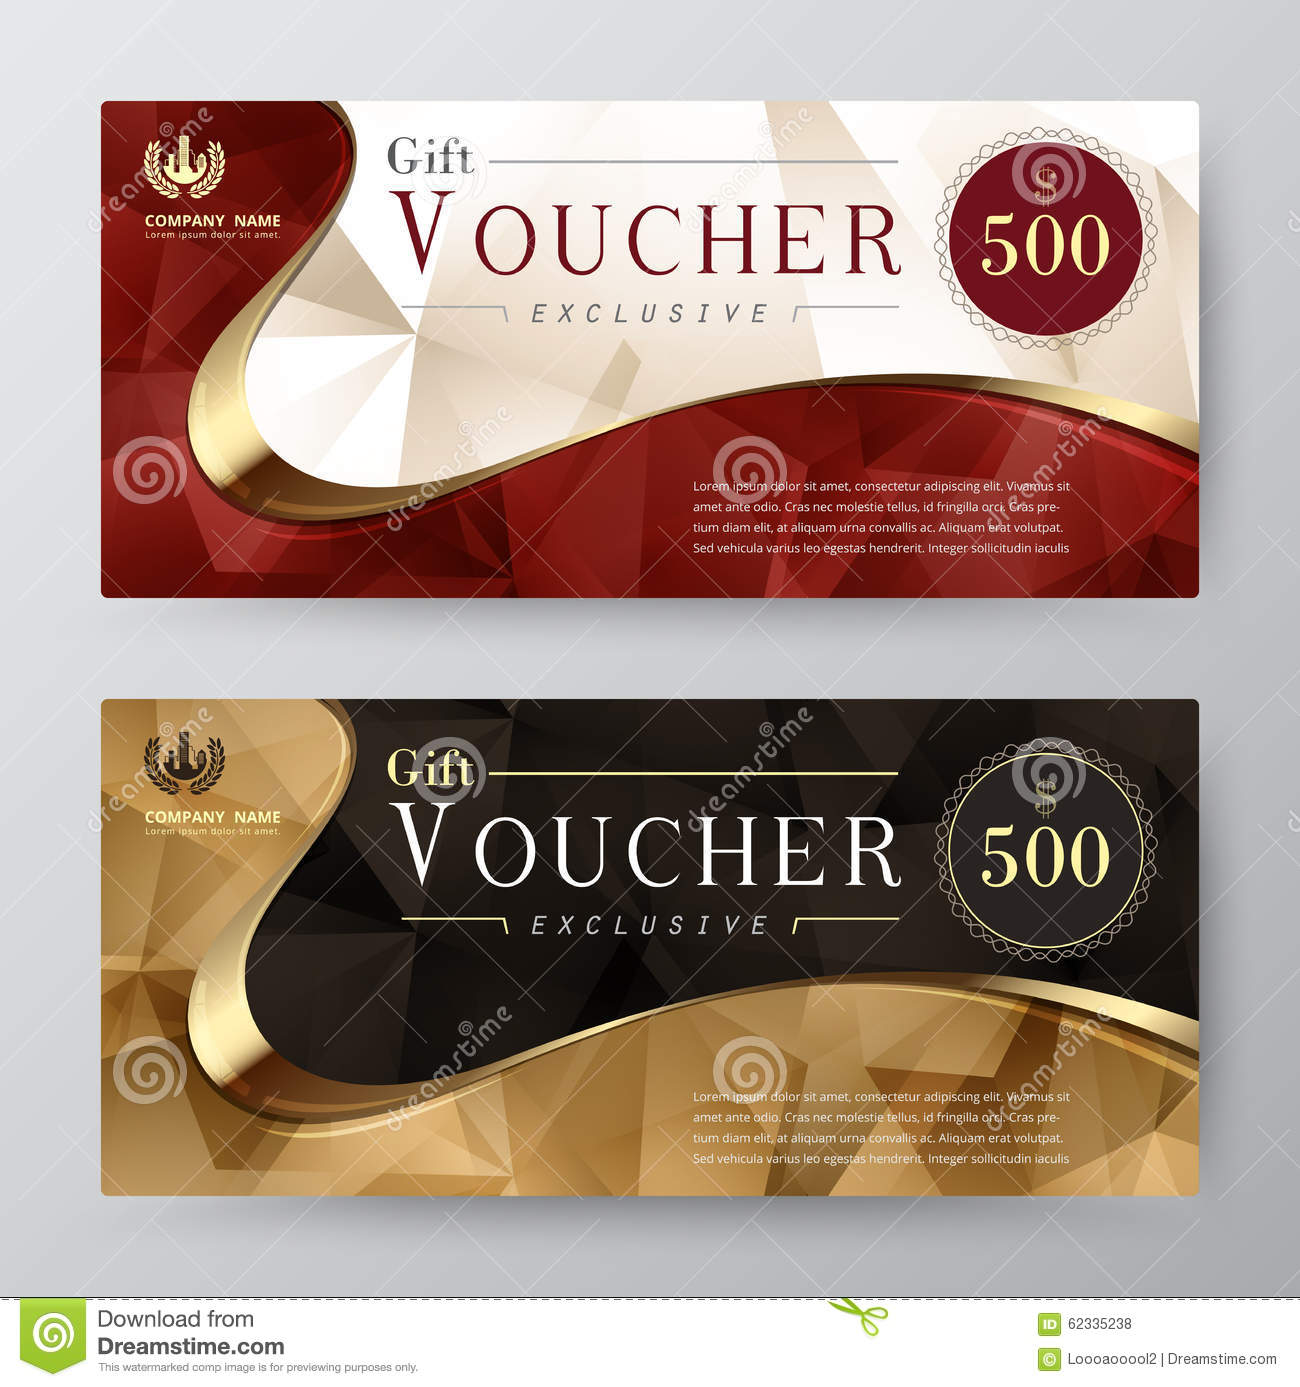 Lovely Gift Voucher Template. Promotion Card, Coupon Design. Exclusive, Bank. Pertaining To Free Voucher Design Template